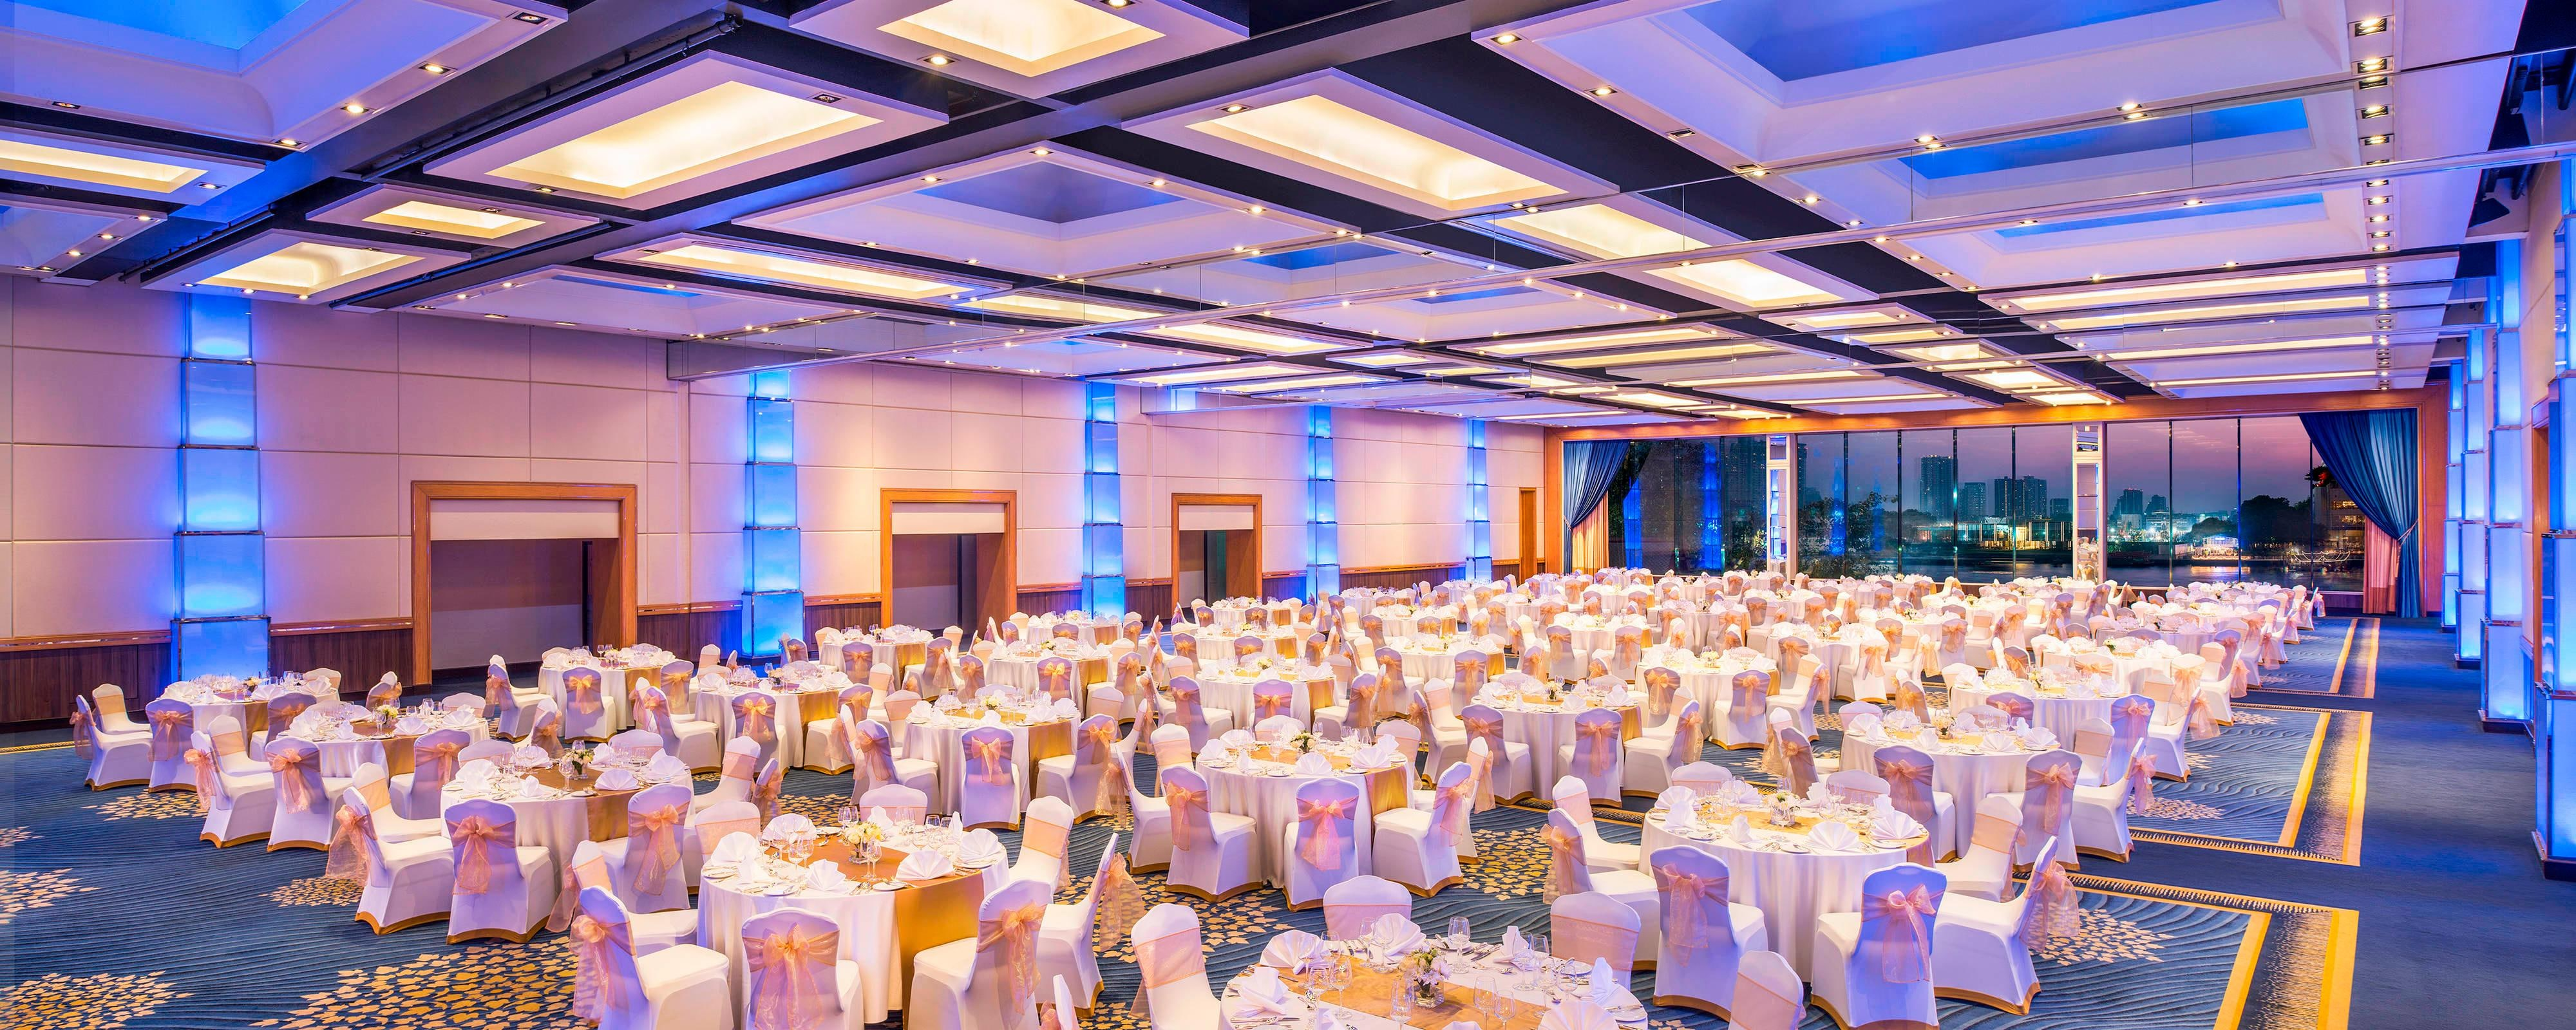 Bangkok Wedding Venue Royal Orchid Sheraton Hotel Towers